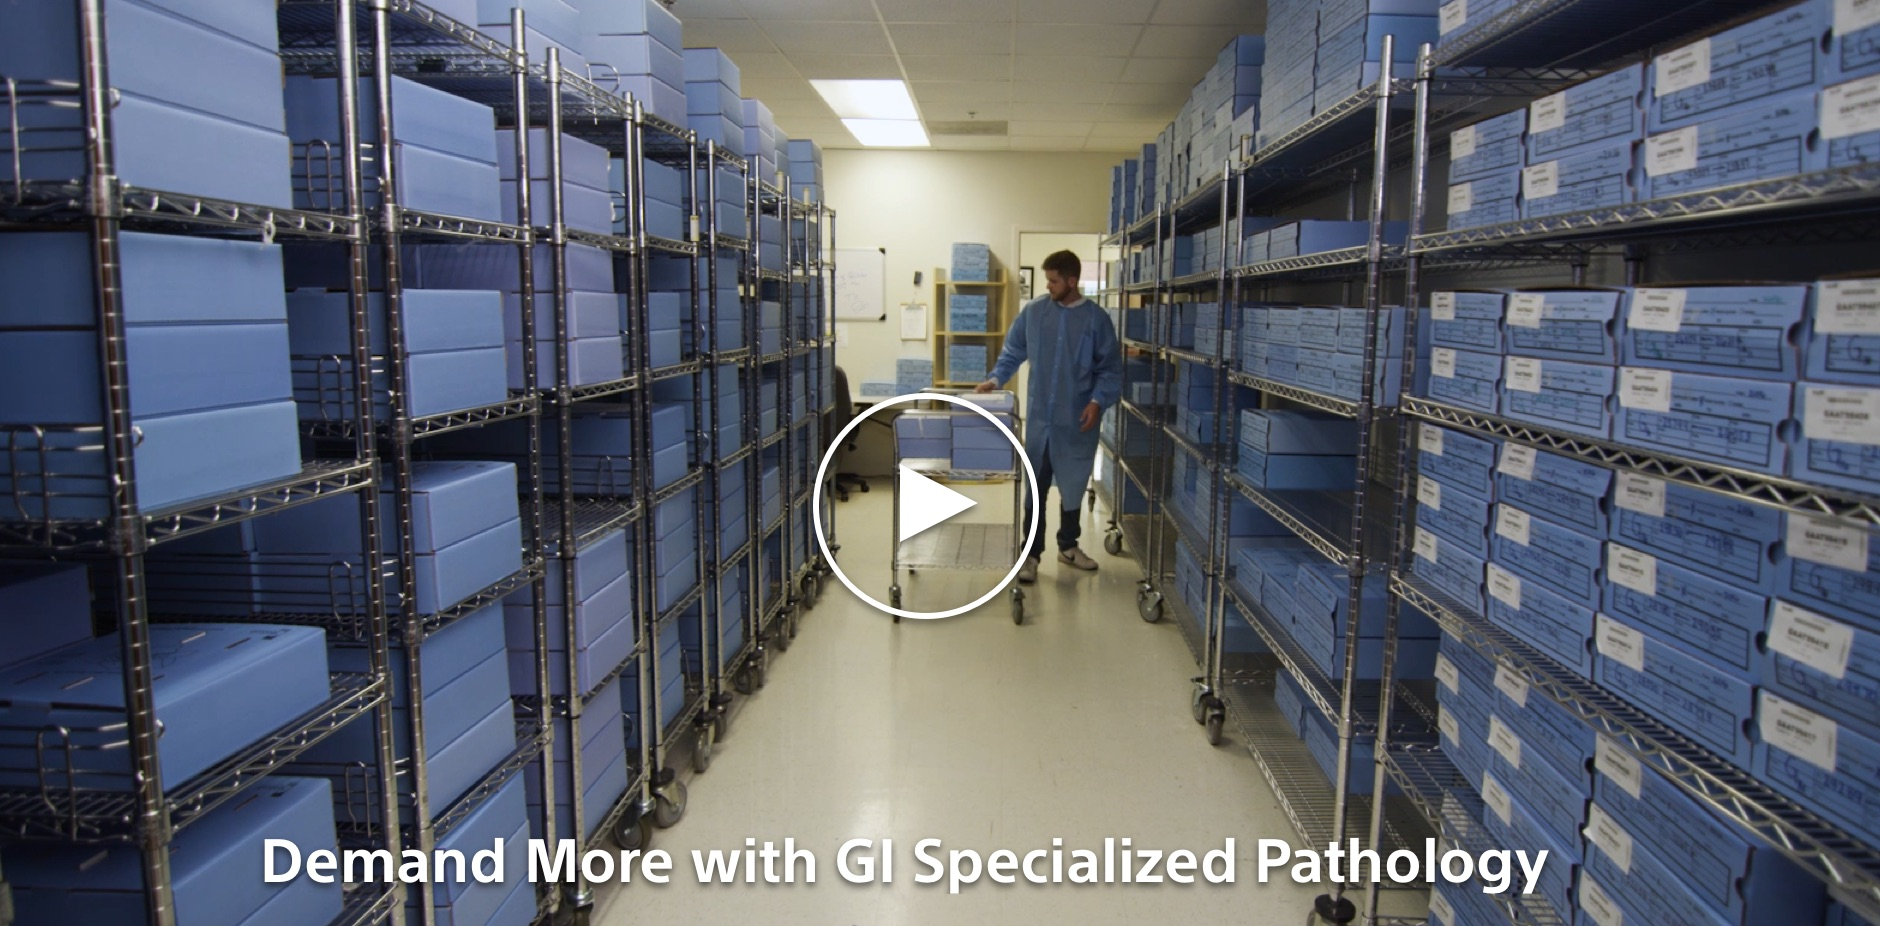 Demand More with GI Specialized Pathology, doctor in medical inventory backroom